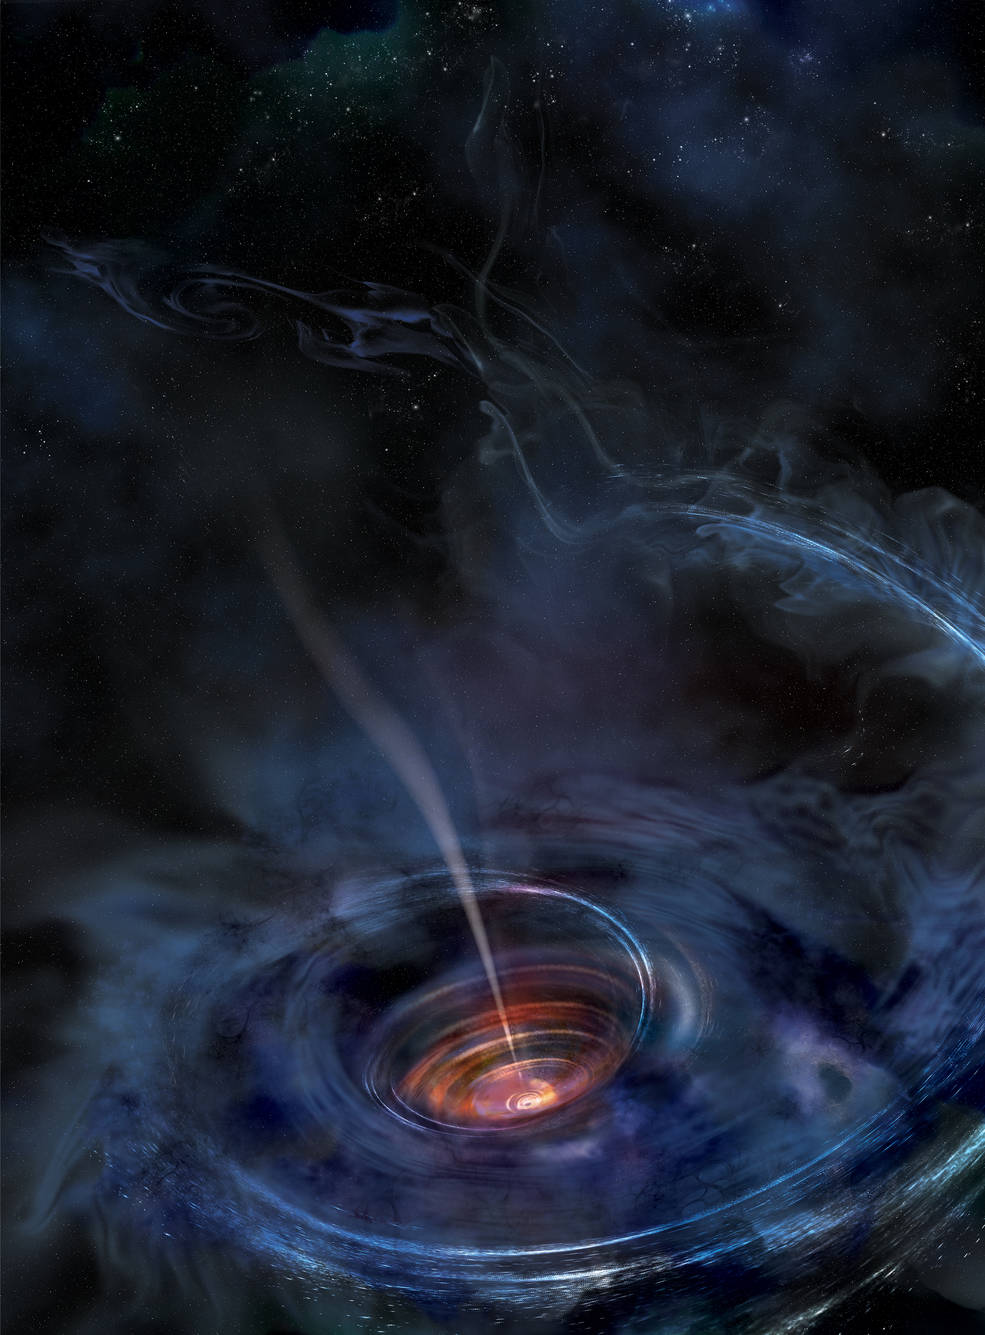 In this artist's rendering, a thick accretion disk has formed around a supermassive black hole following the tidal disruption of a star that wandered too close. Stellar debris has fallen toward the black hole and collected into a thick chaotic disk of hot gas. Flashes of X-ray light near the center of the disk result in light echoes that allow astronomers to map the structure of the funnel-like flow, revealing for the first time strong gravity effects around a normally quiescent black hole.